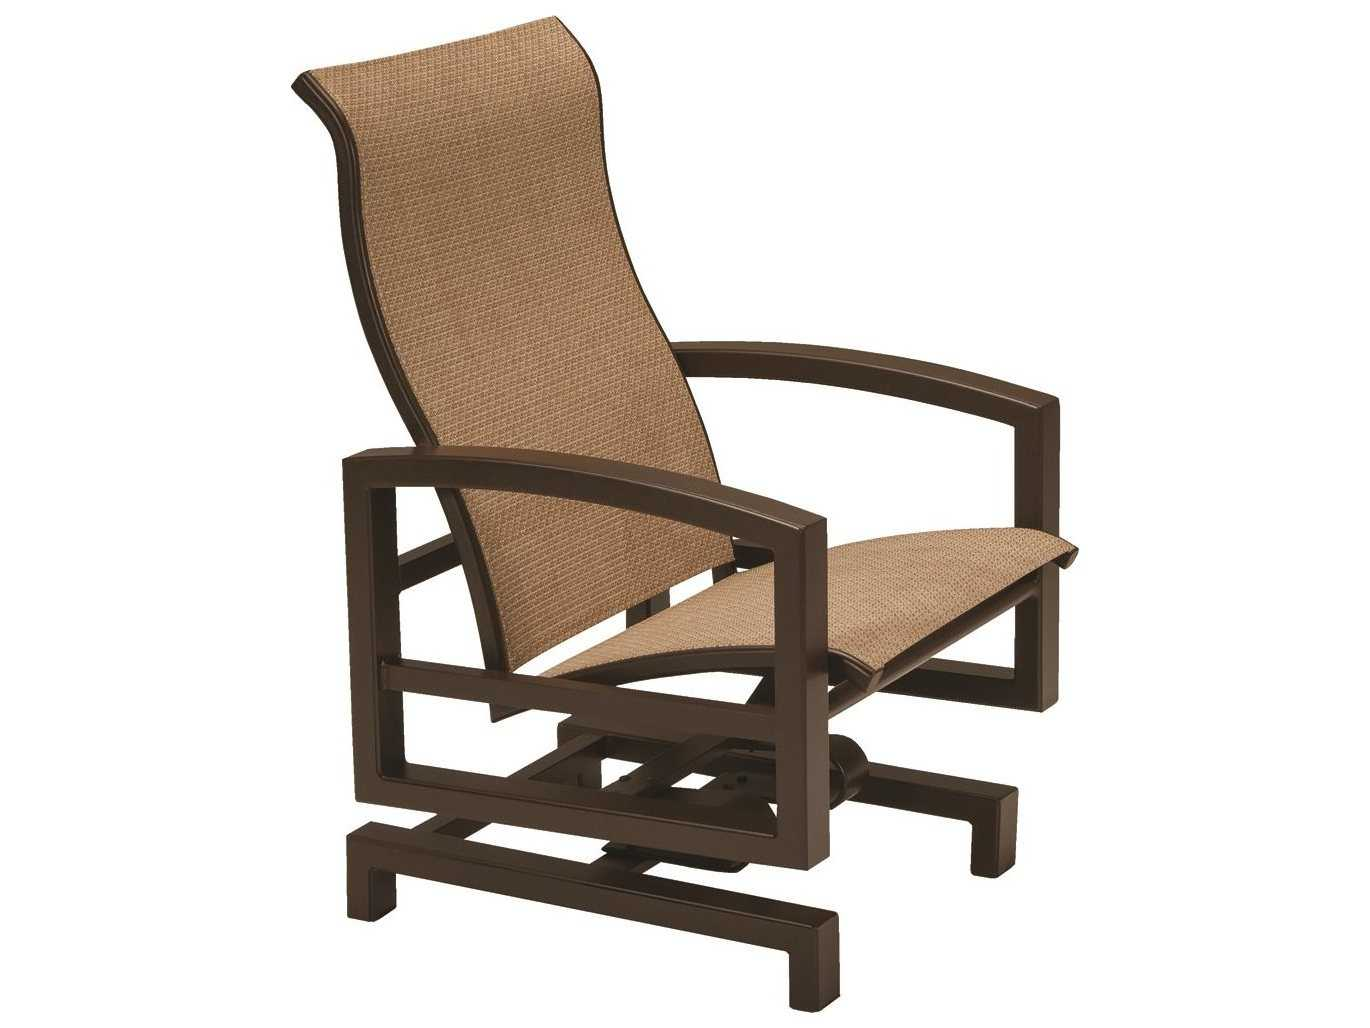 Lakeside padded sling aluminum outdoor furniture by for Furniture gallery lakeside